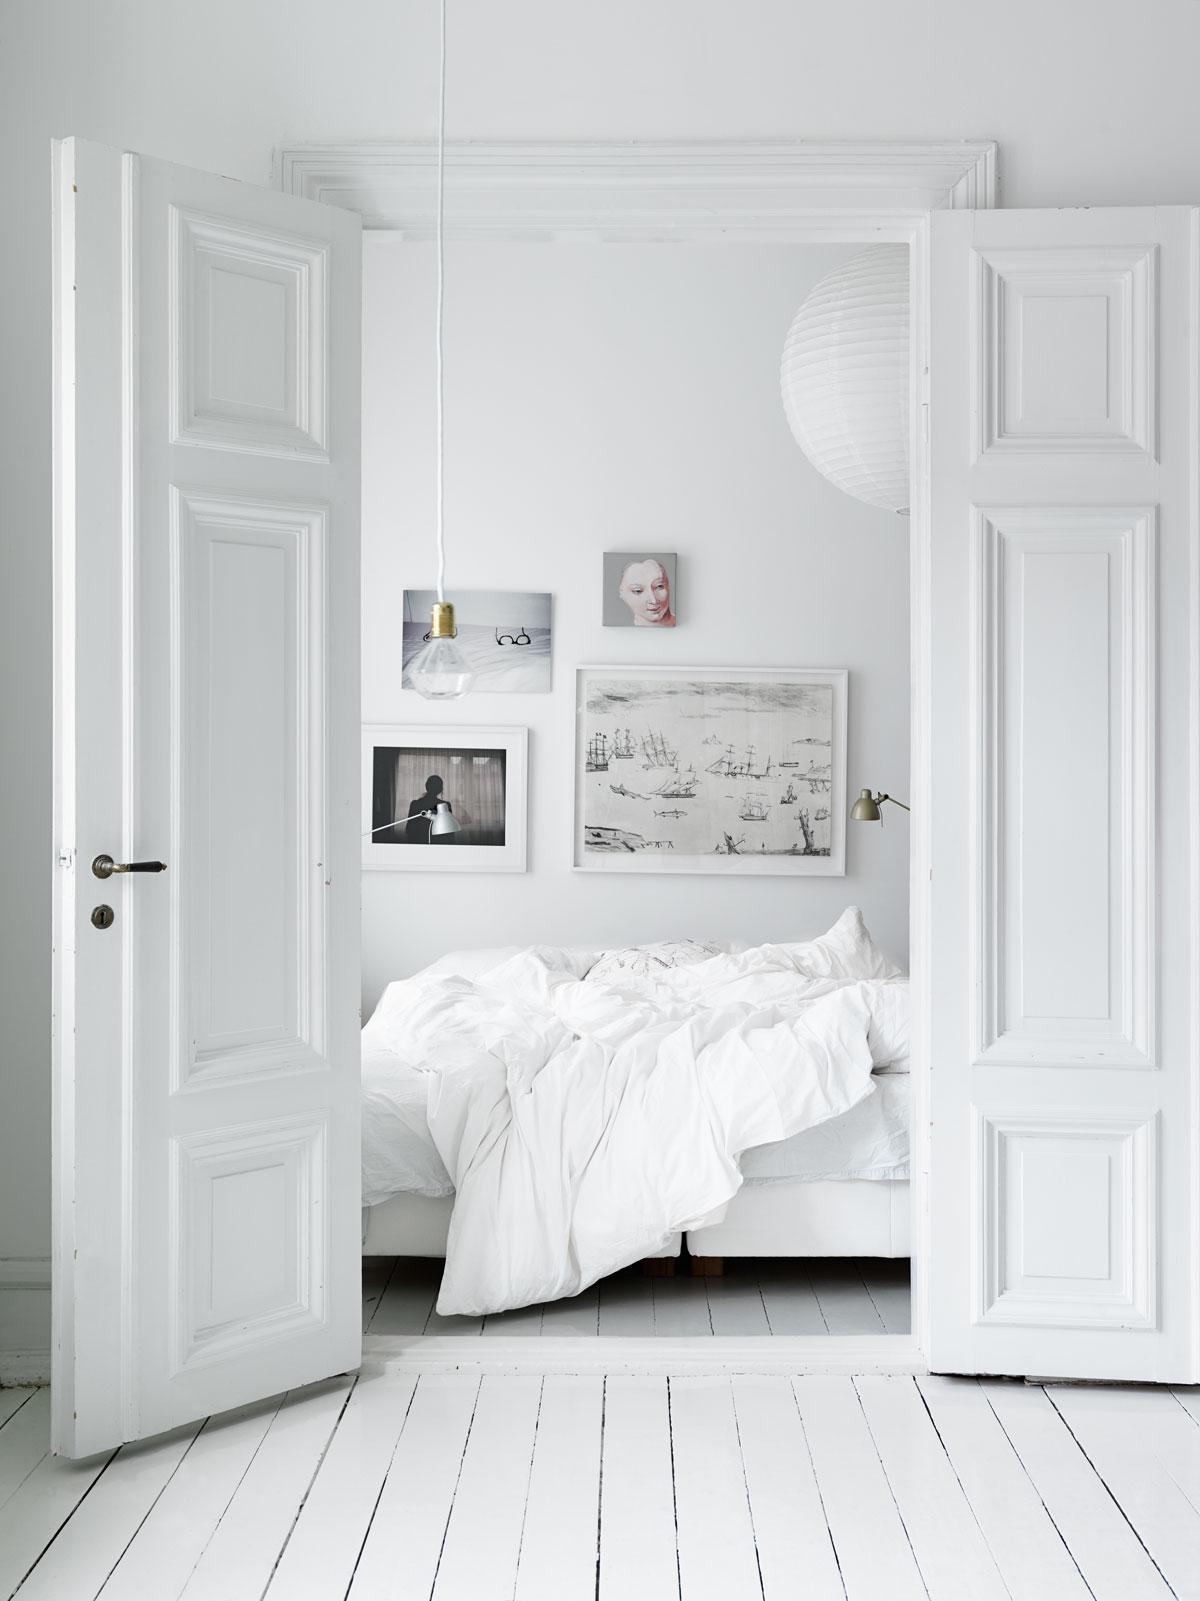 a home in sweden photo by petra bindel 50 Awesome Bedroom Ideas